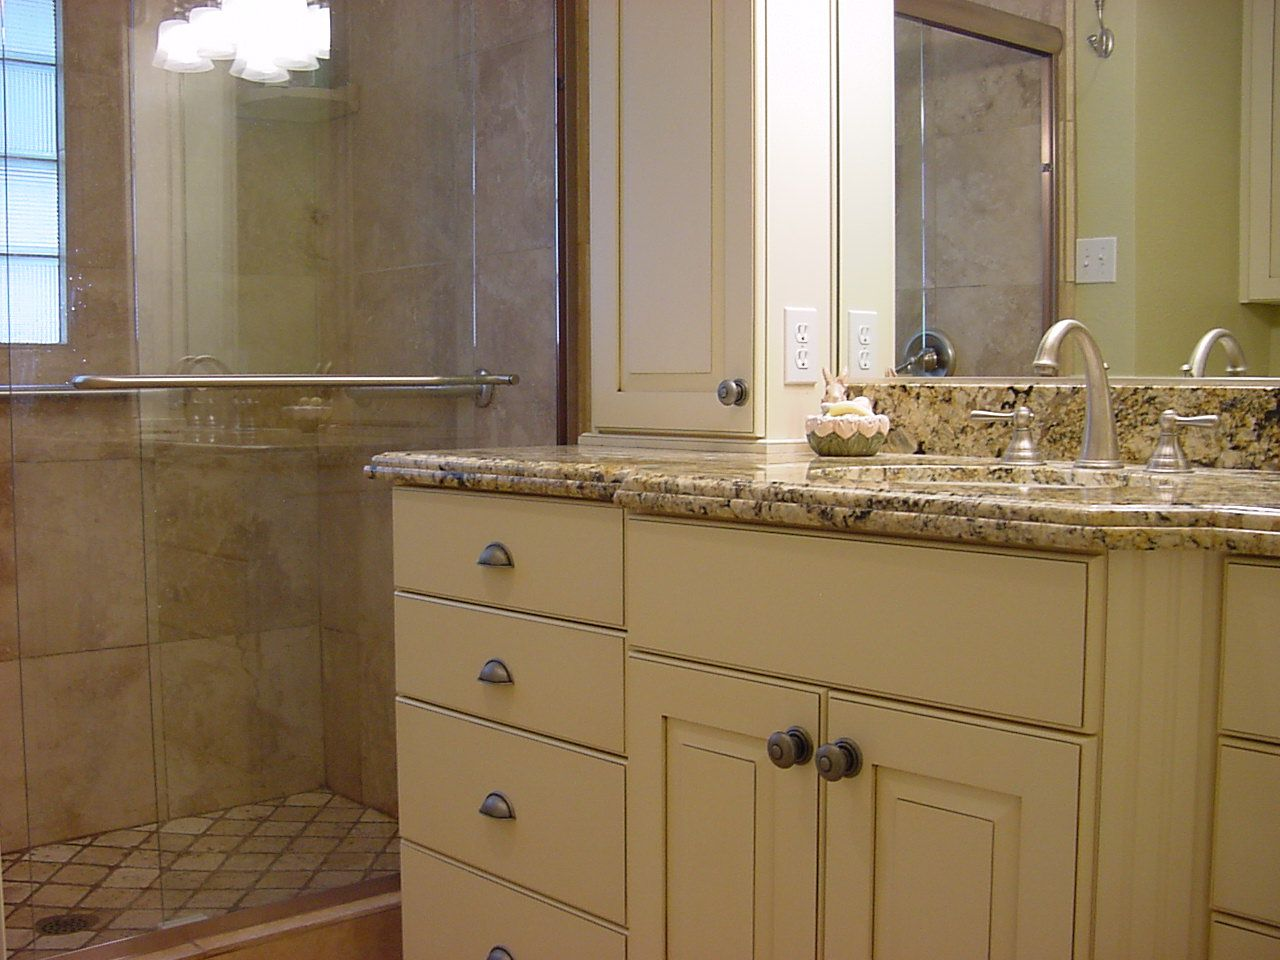 Bathroom Remodeling Images By 3 Day Kitchen U0026 Bath. Request Your Free  Bathroom Remodel Consultation Today